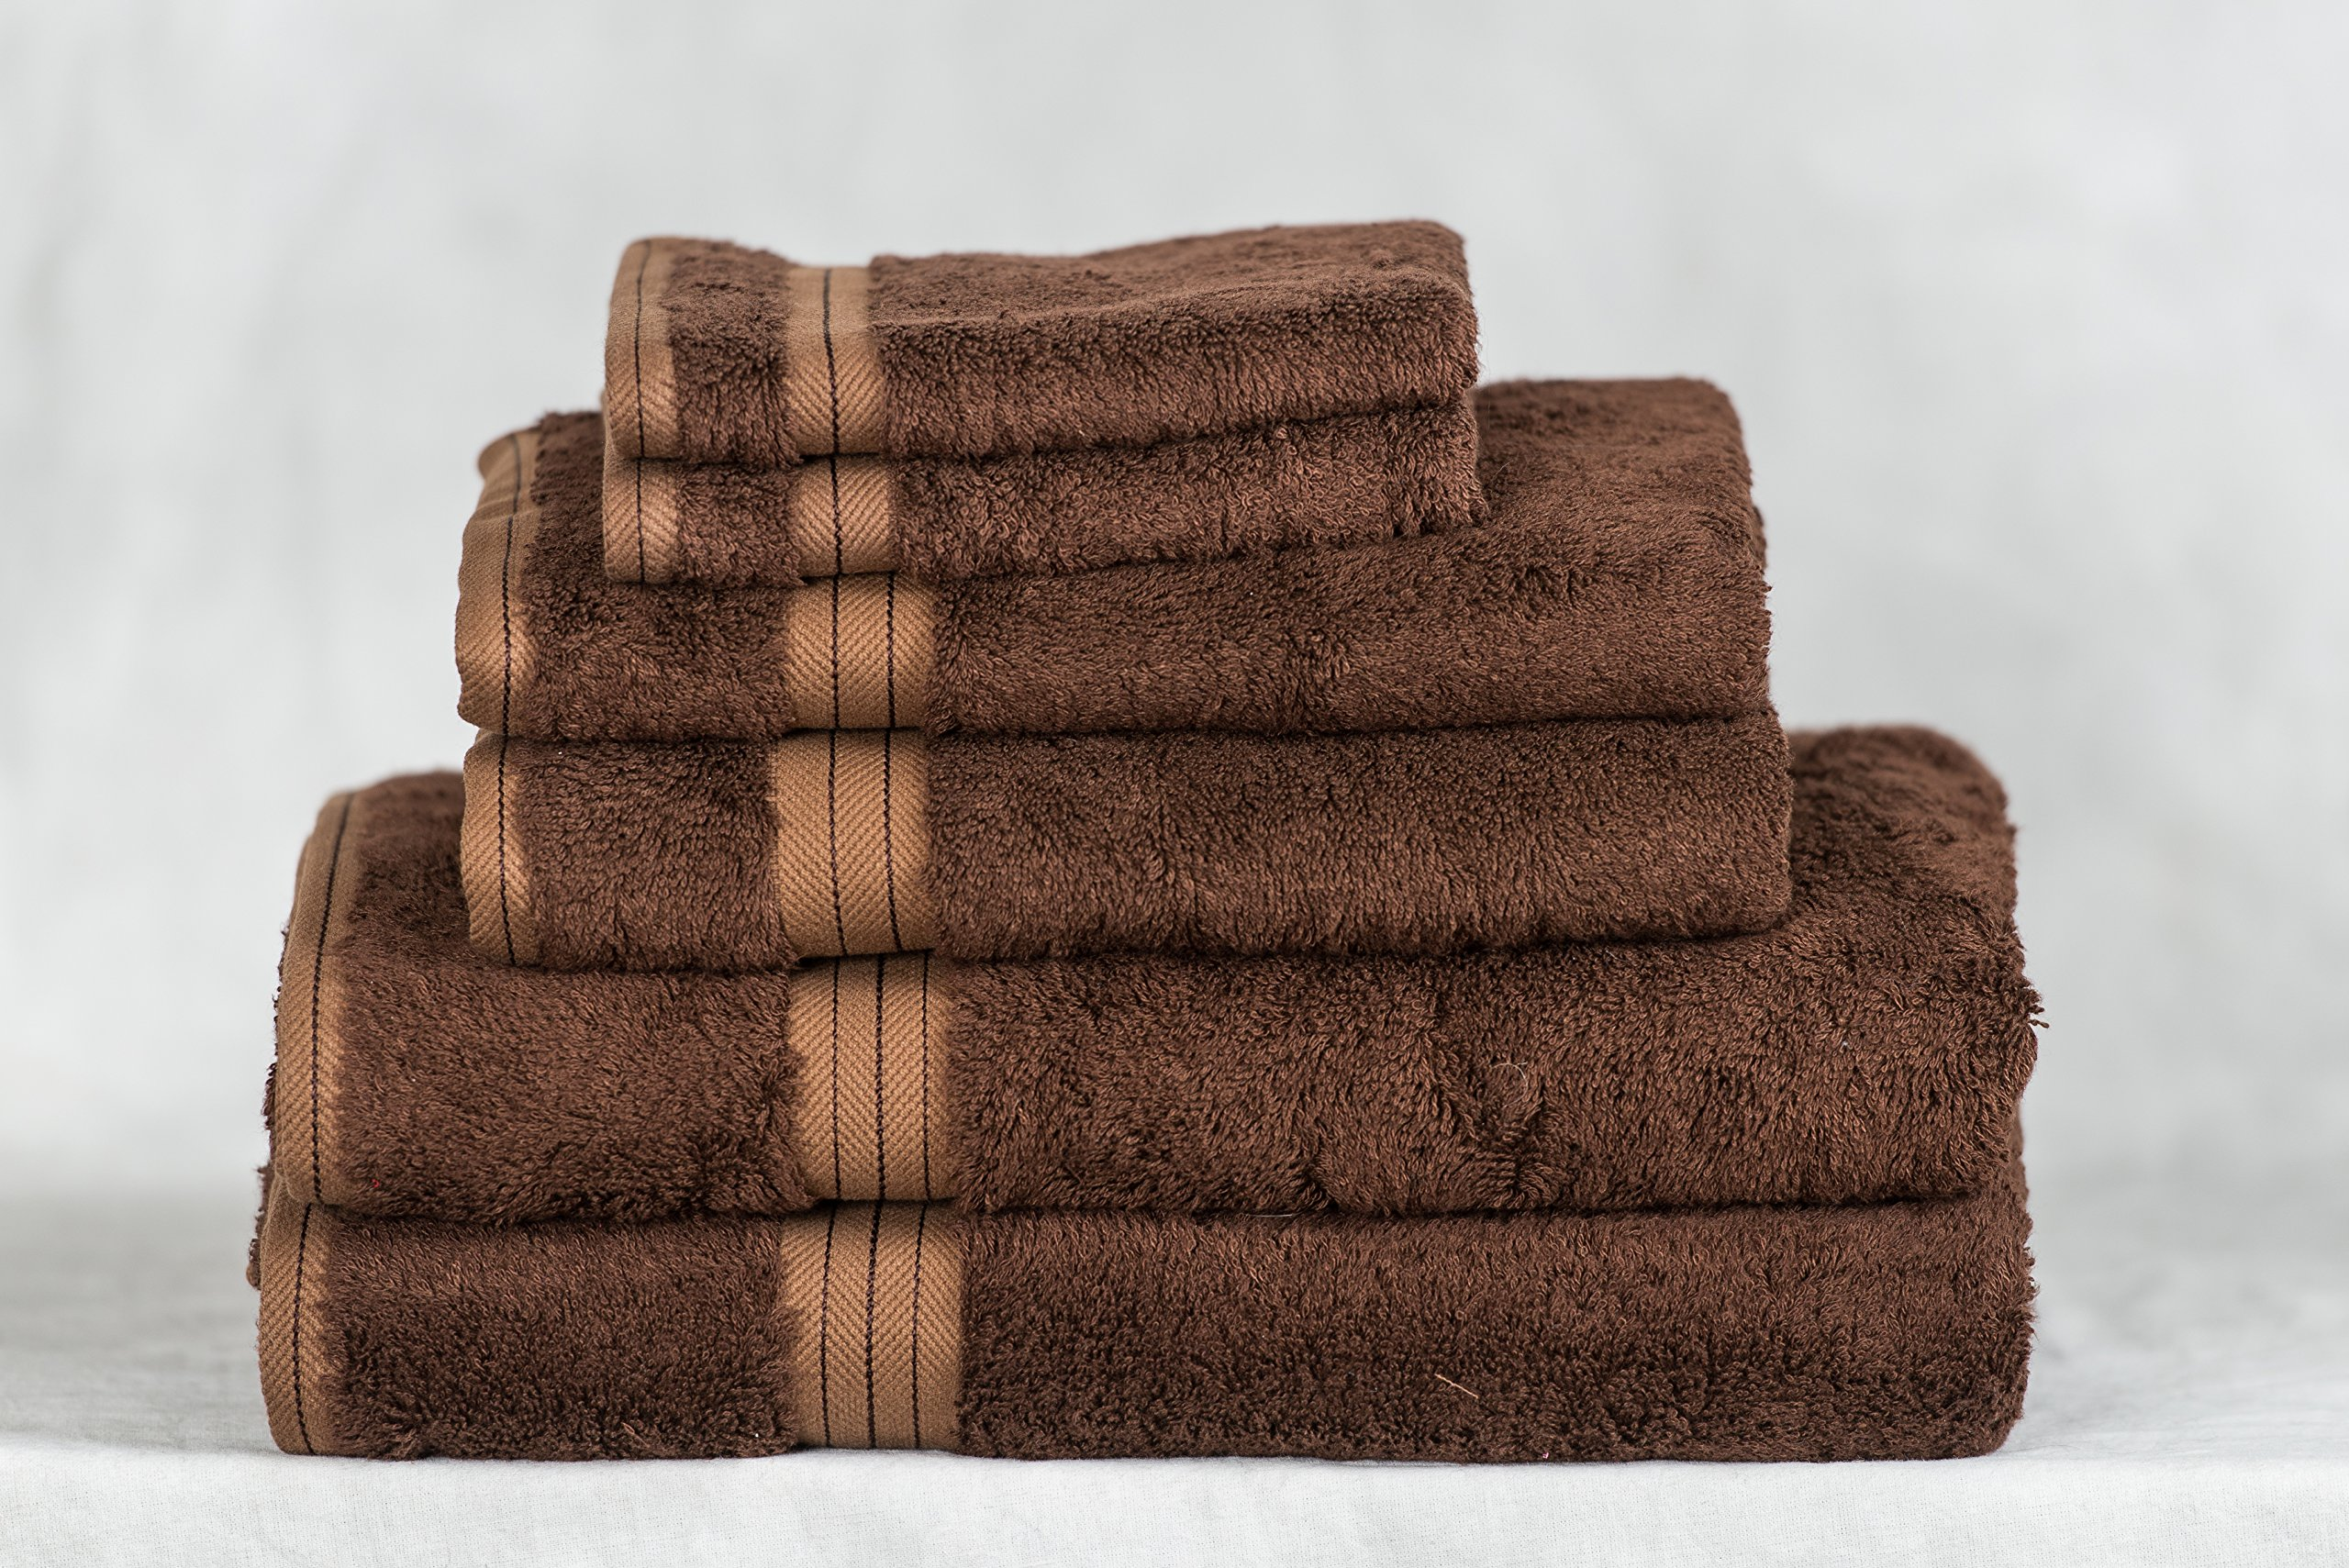 Bamboo Towel Set - Dark Chocolate Color - 6 Piece Set - Available in 20 Colors